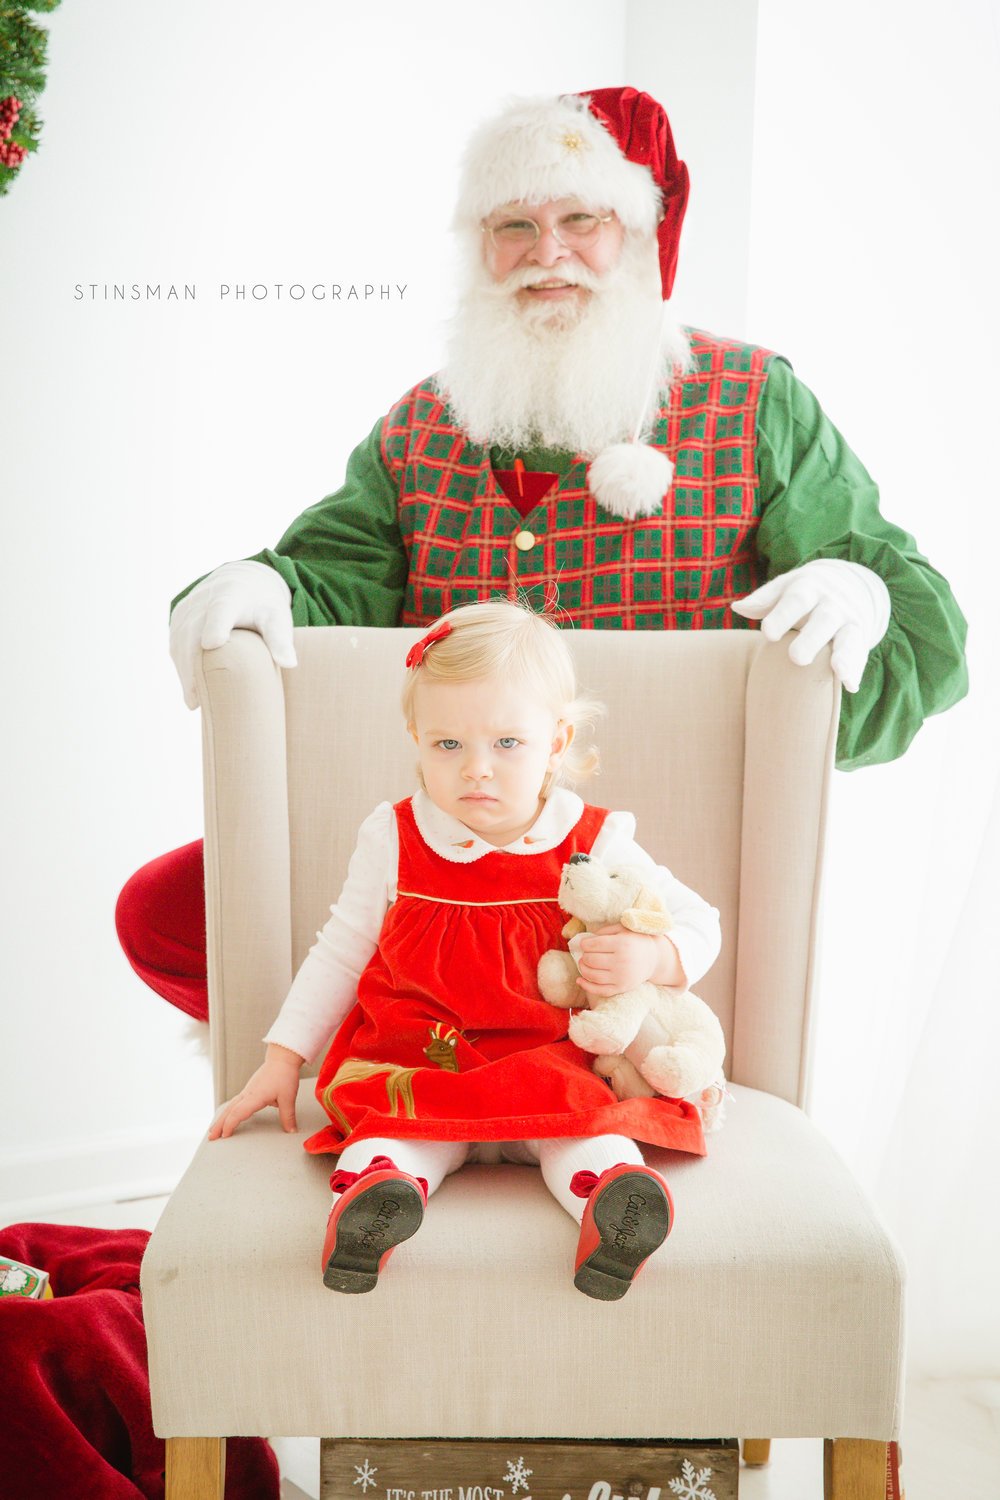 little girl sitting in a chair with Santa behind her in burlington nj photo studio